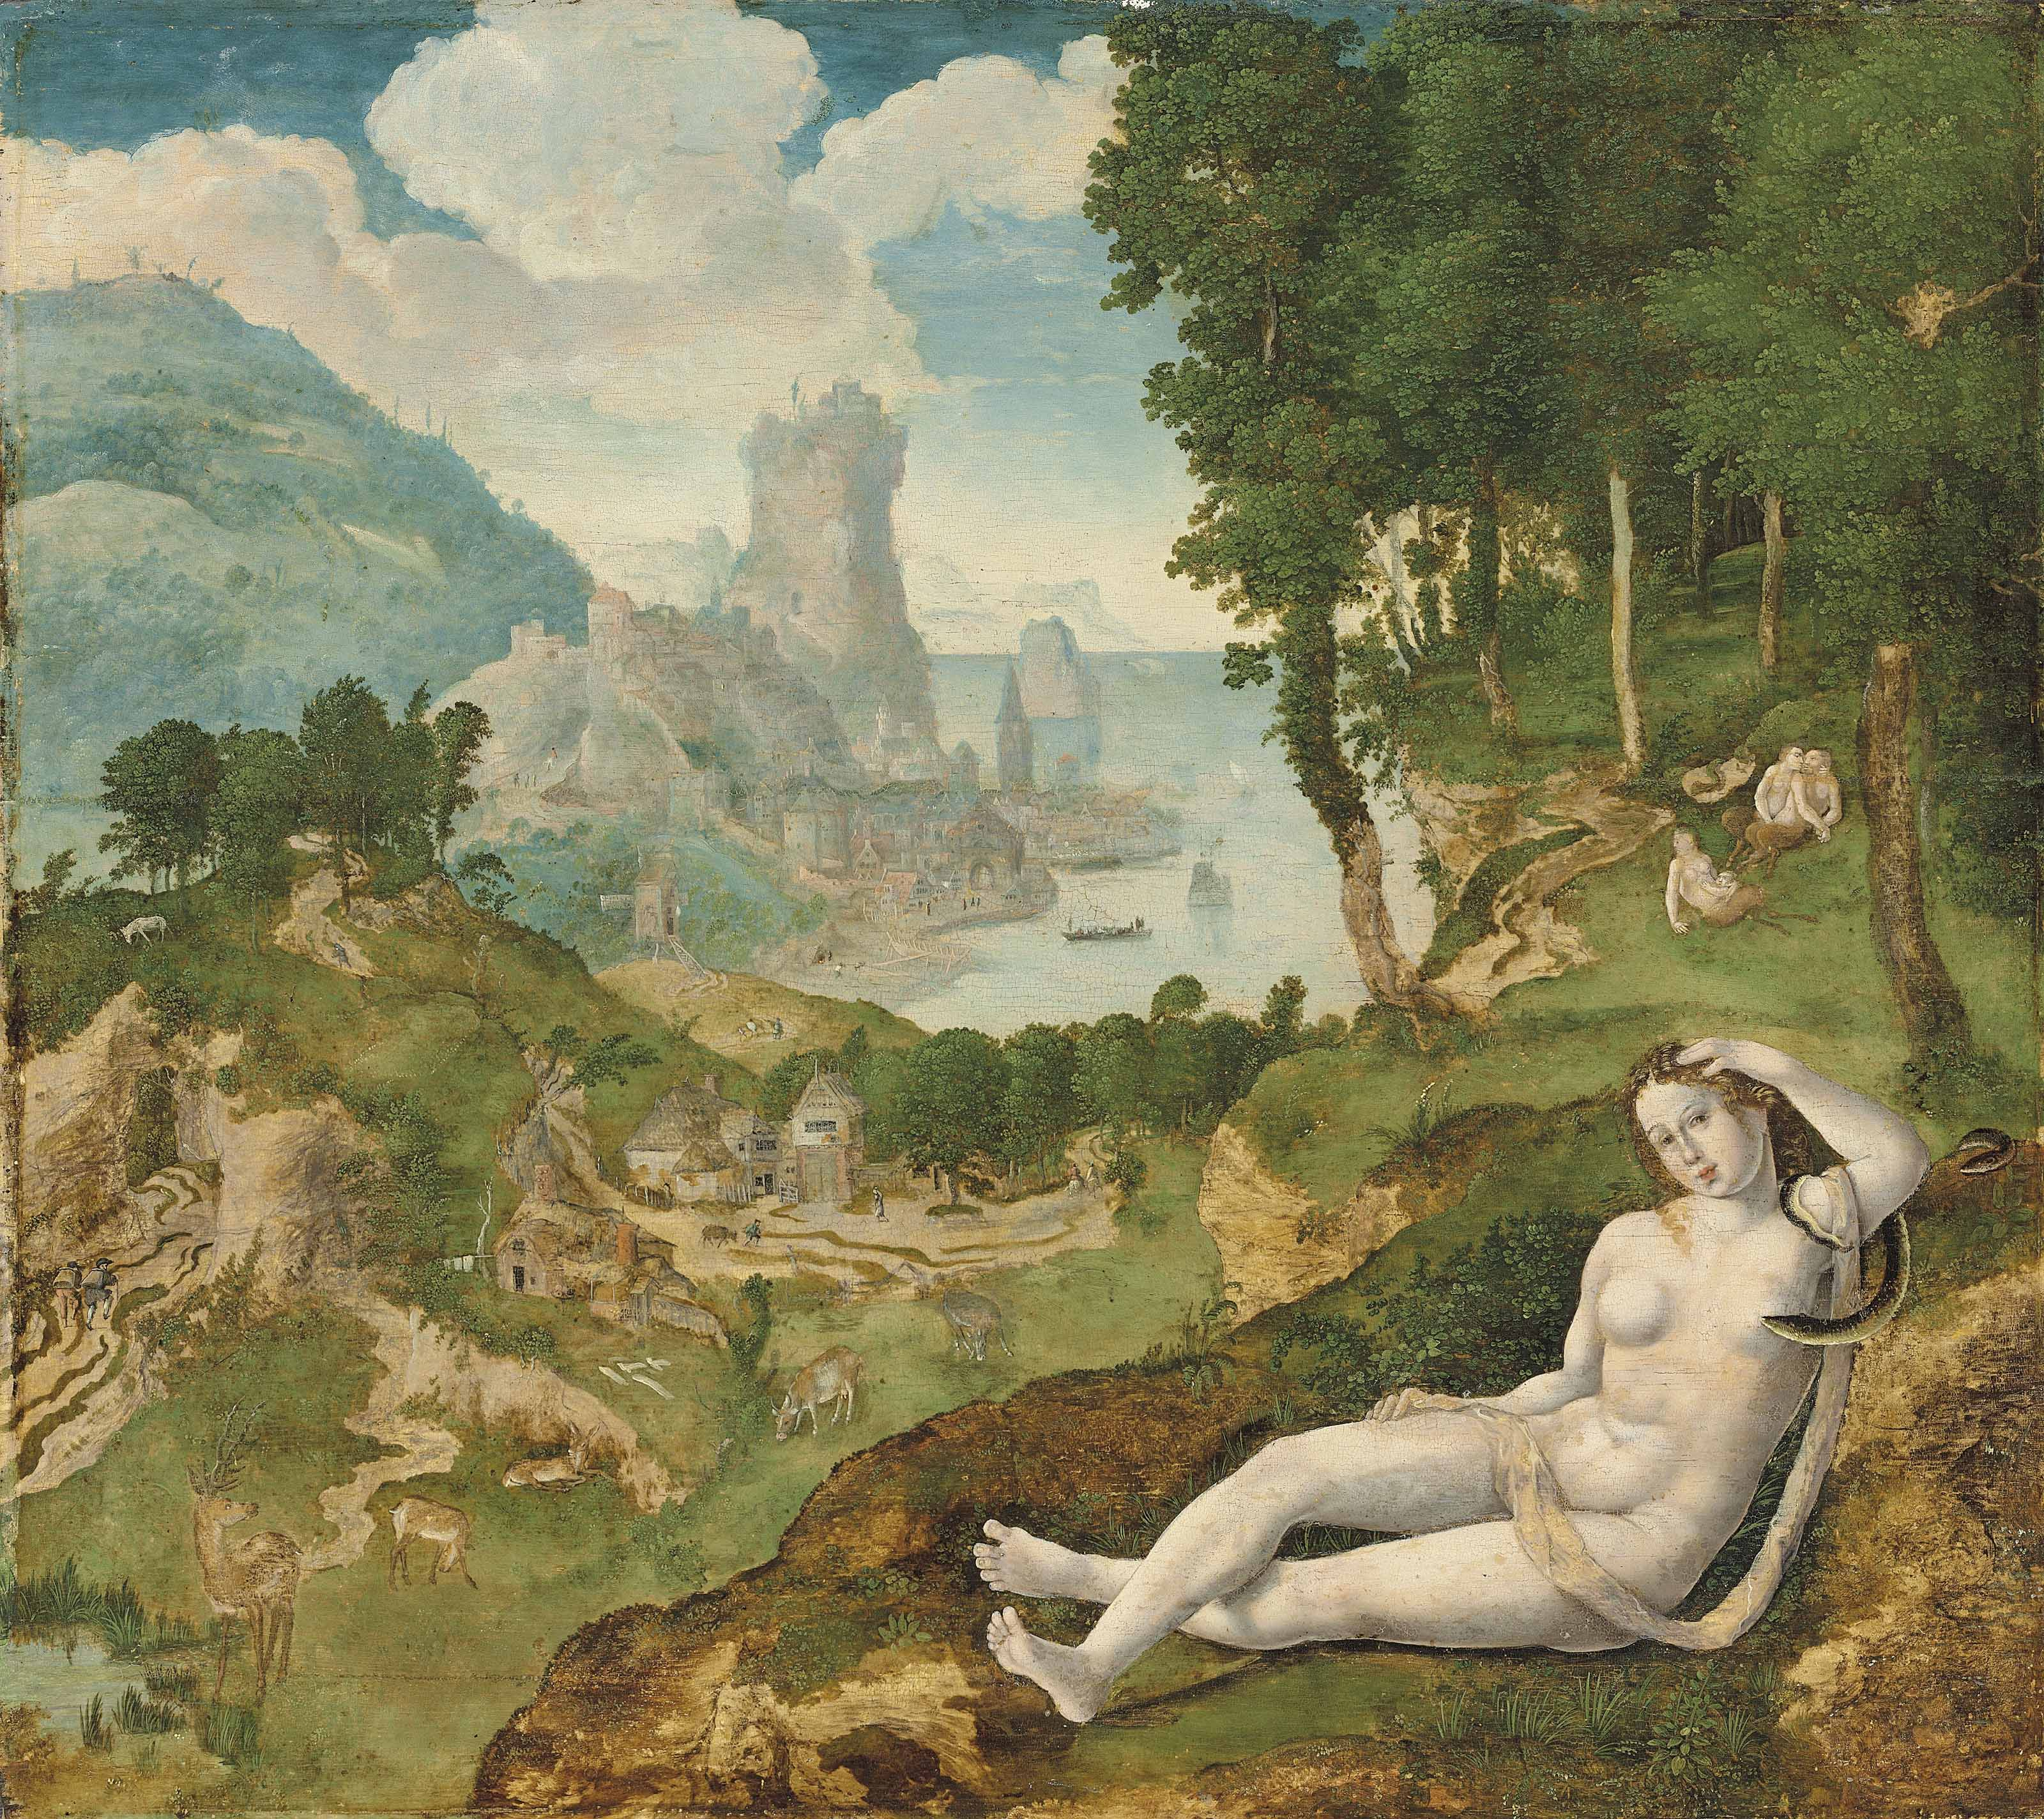 A nymph, or possibly Ariadne, reclining in an extensive mountainous seascape by cavorting satyrs, a village beyond